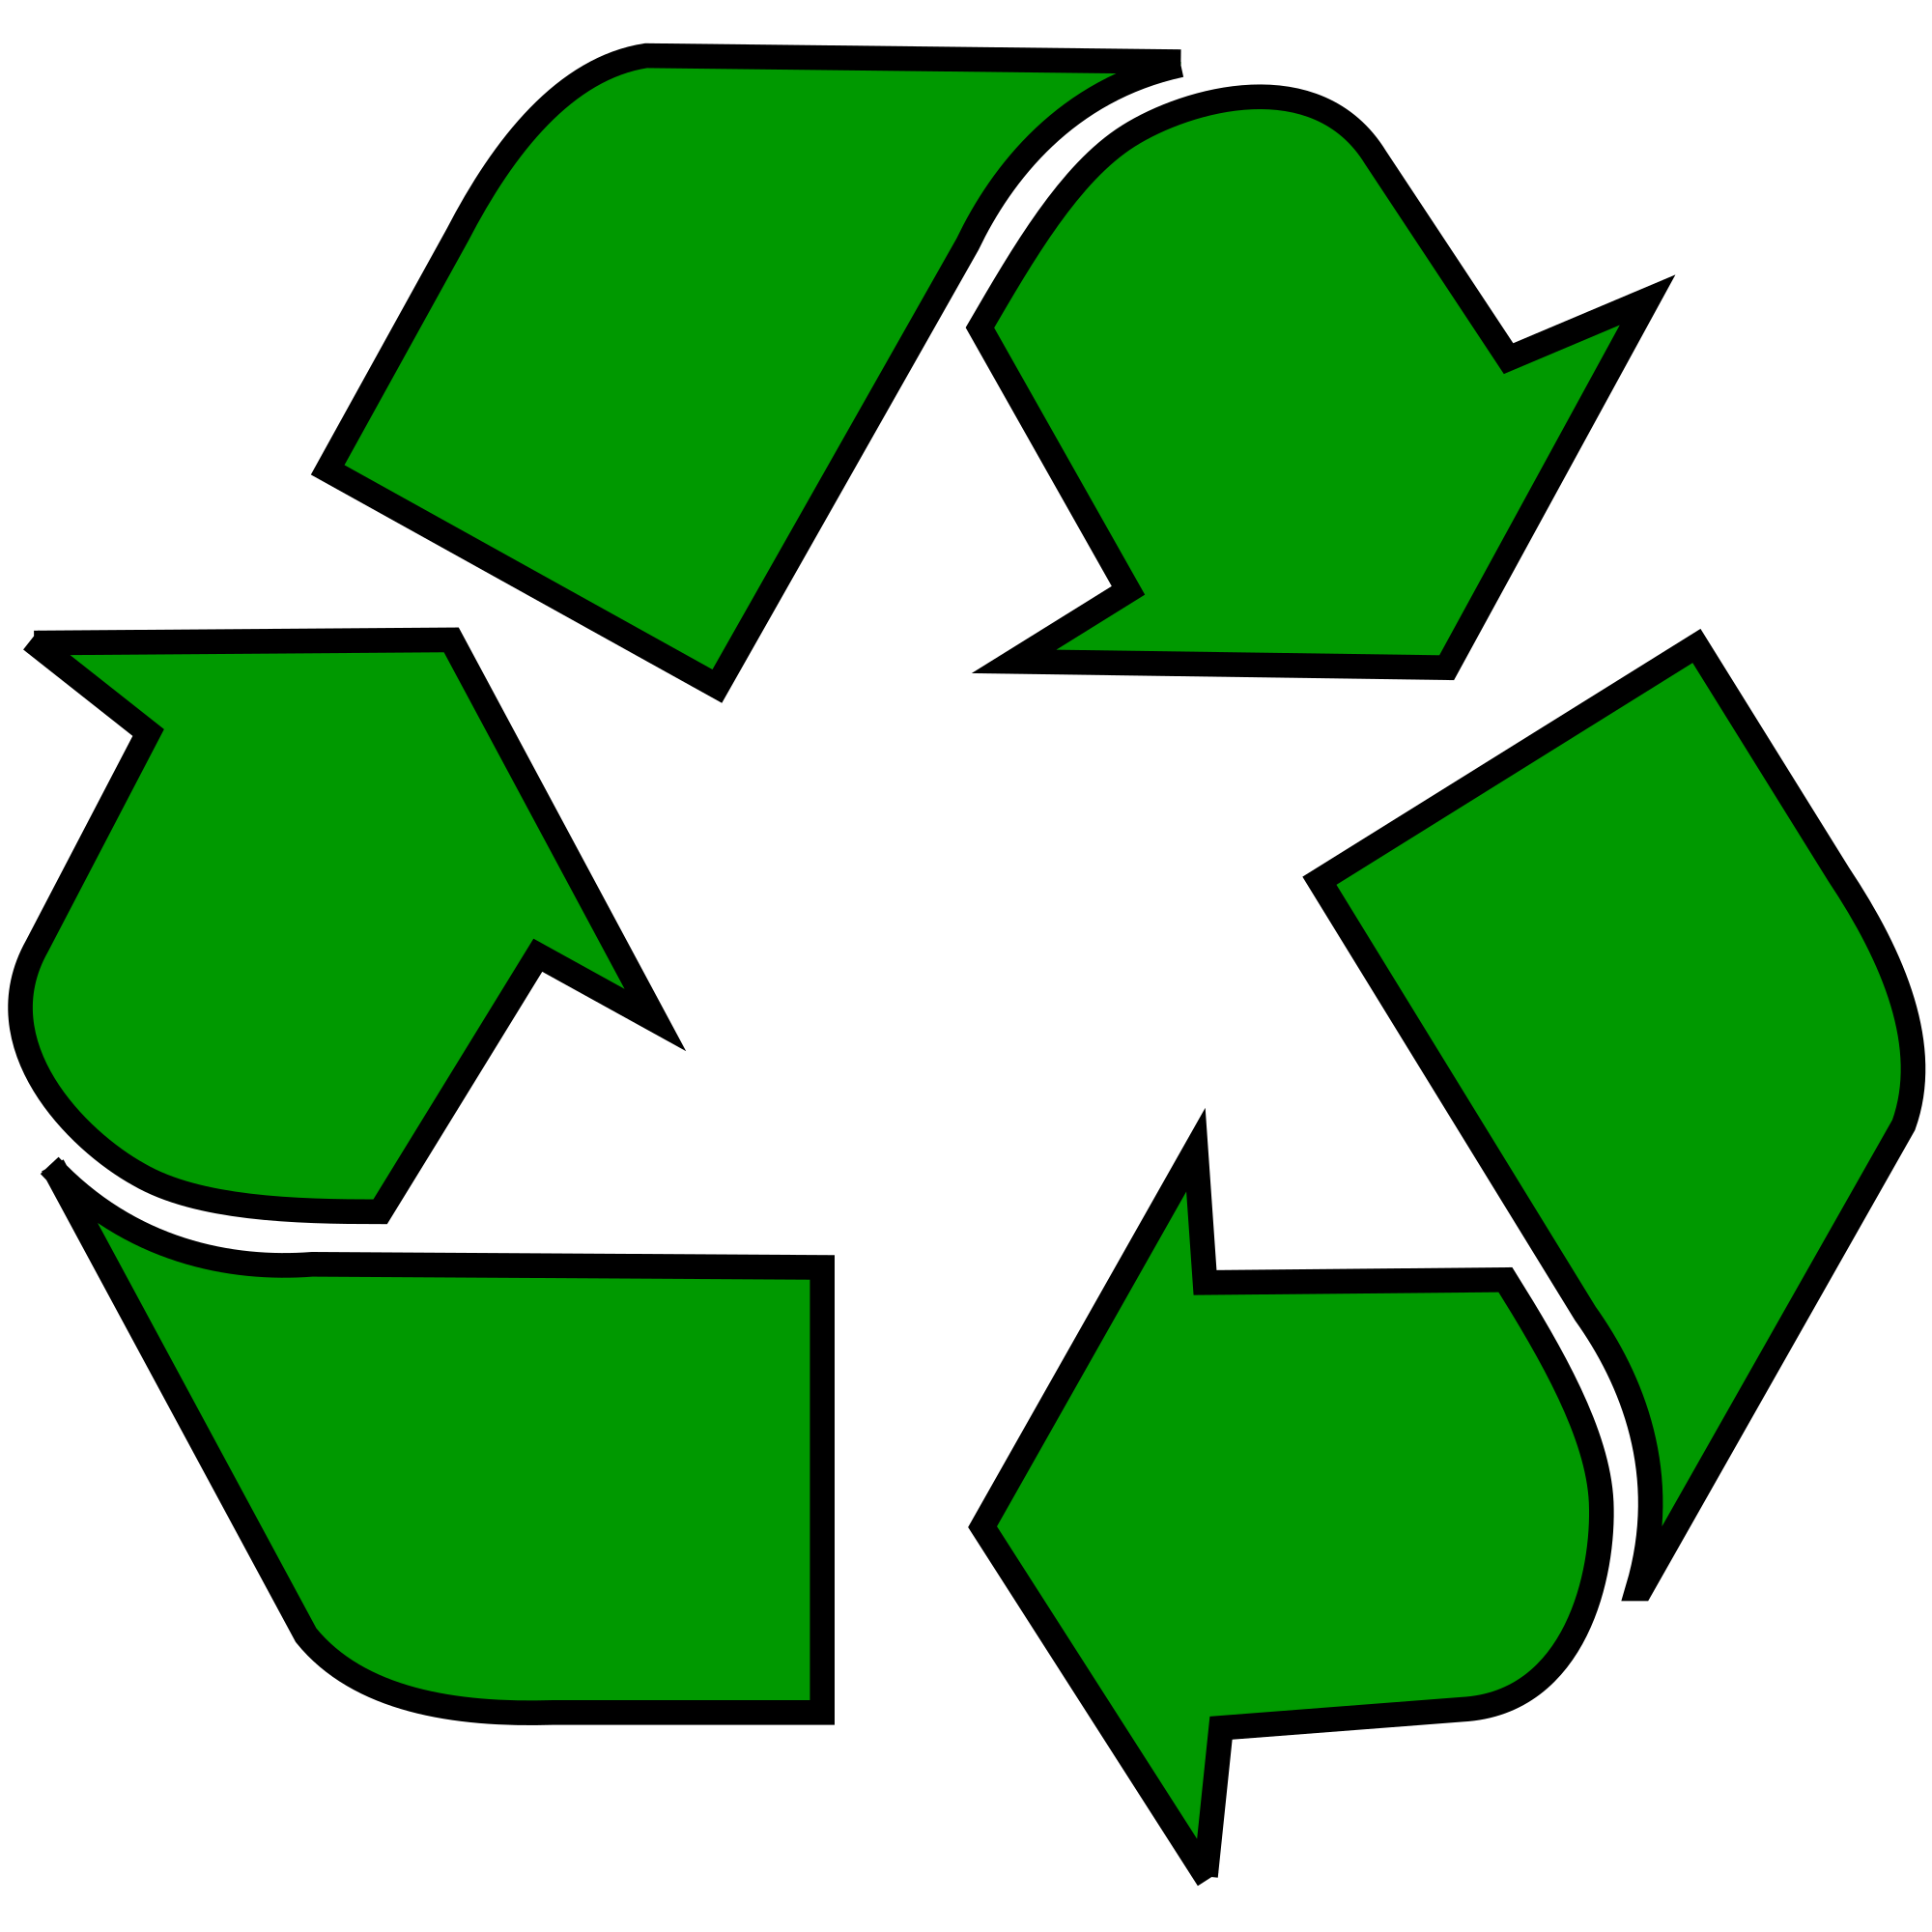 Fully Recyclable Symbol Logo Recycle